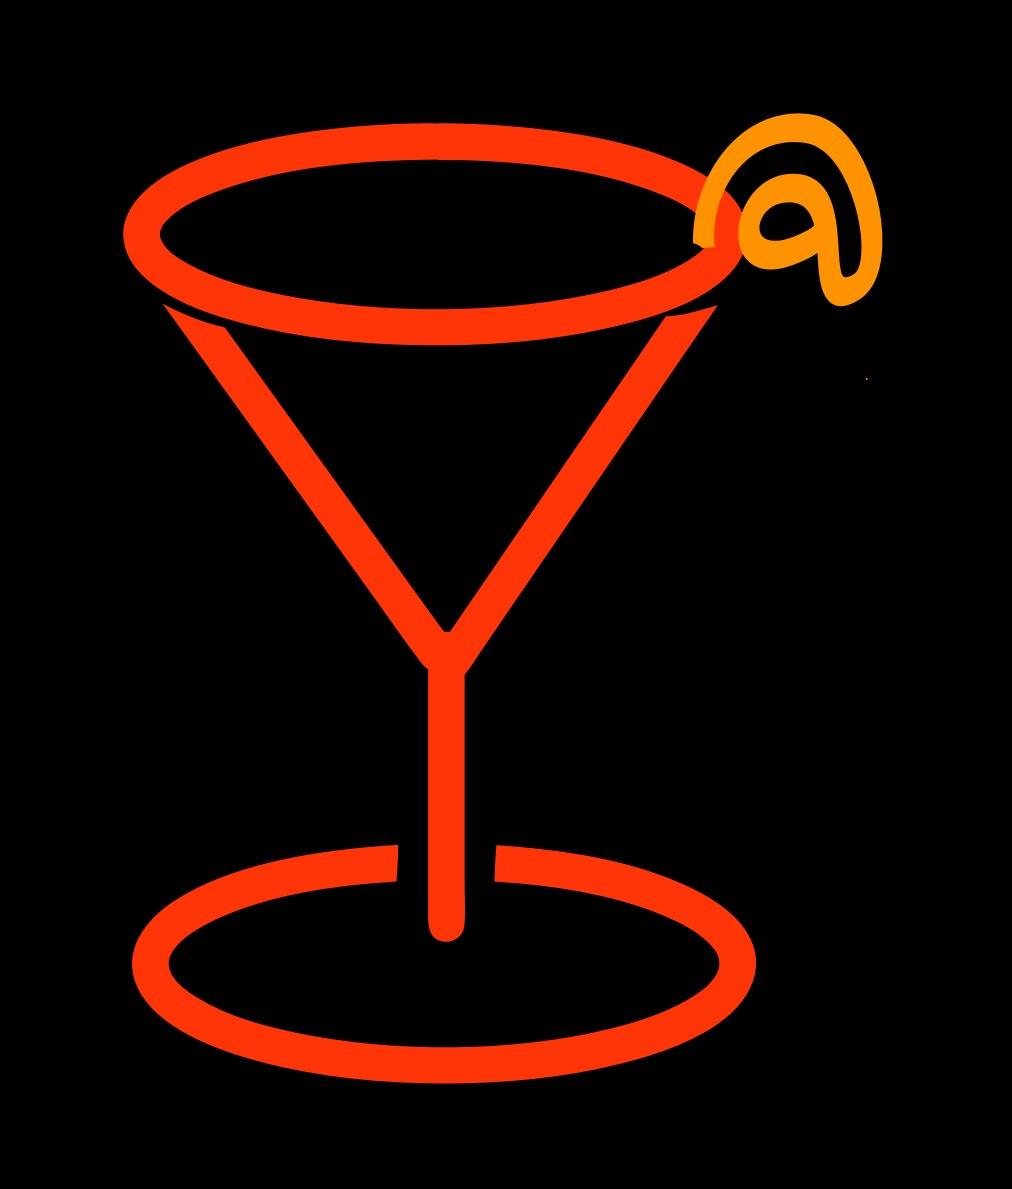 Martini Glass Logo 1750867084_397460a612_o.jpg